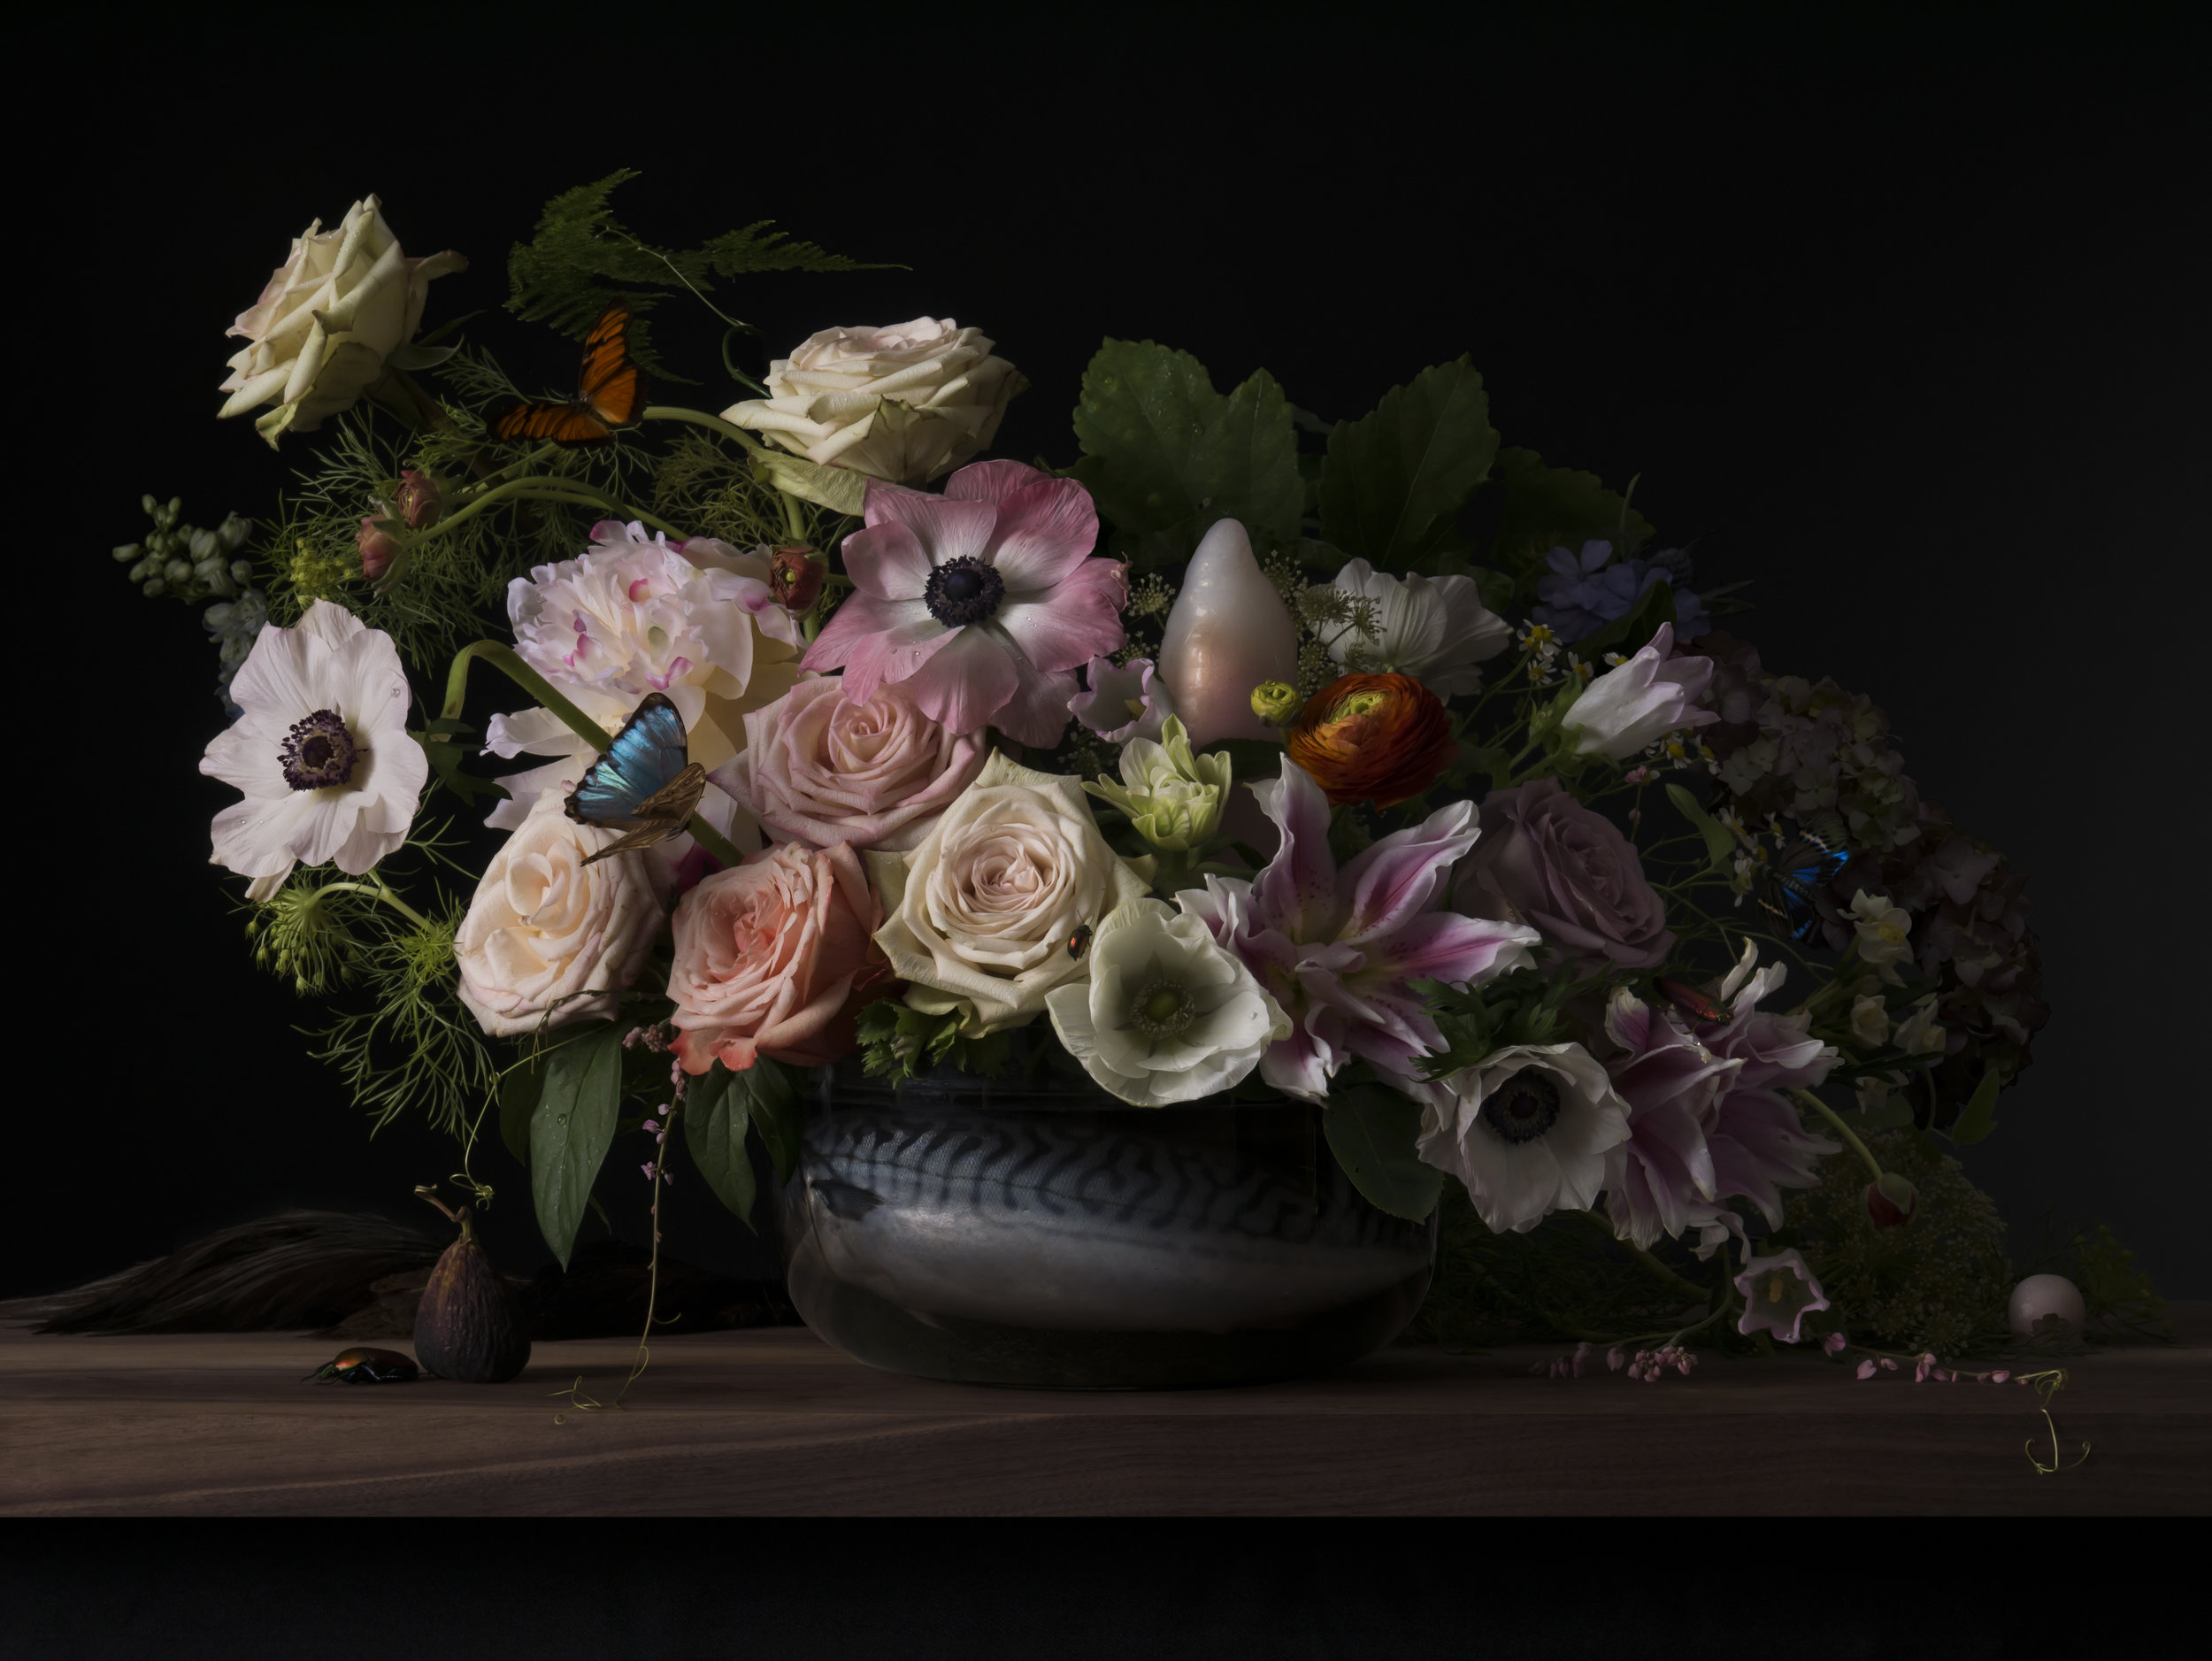 Houston, TX based artist Margaux Crump, courtesy of the artist. Still life with roses, flowers, beetles, butterflies.